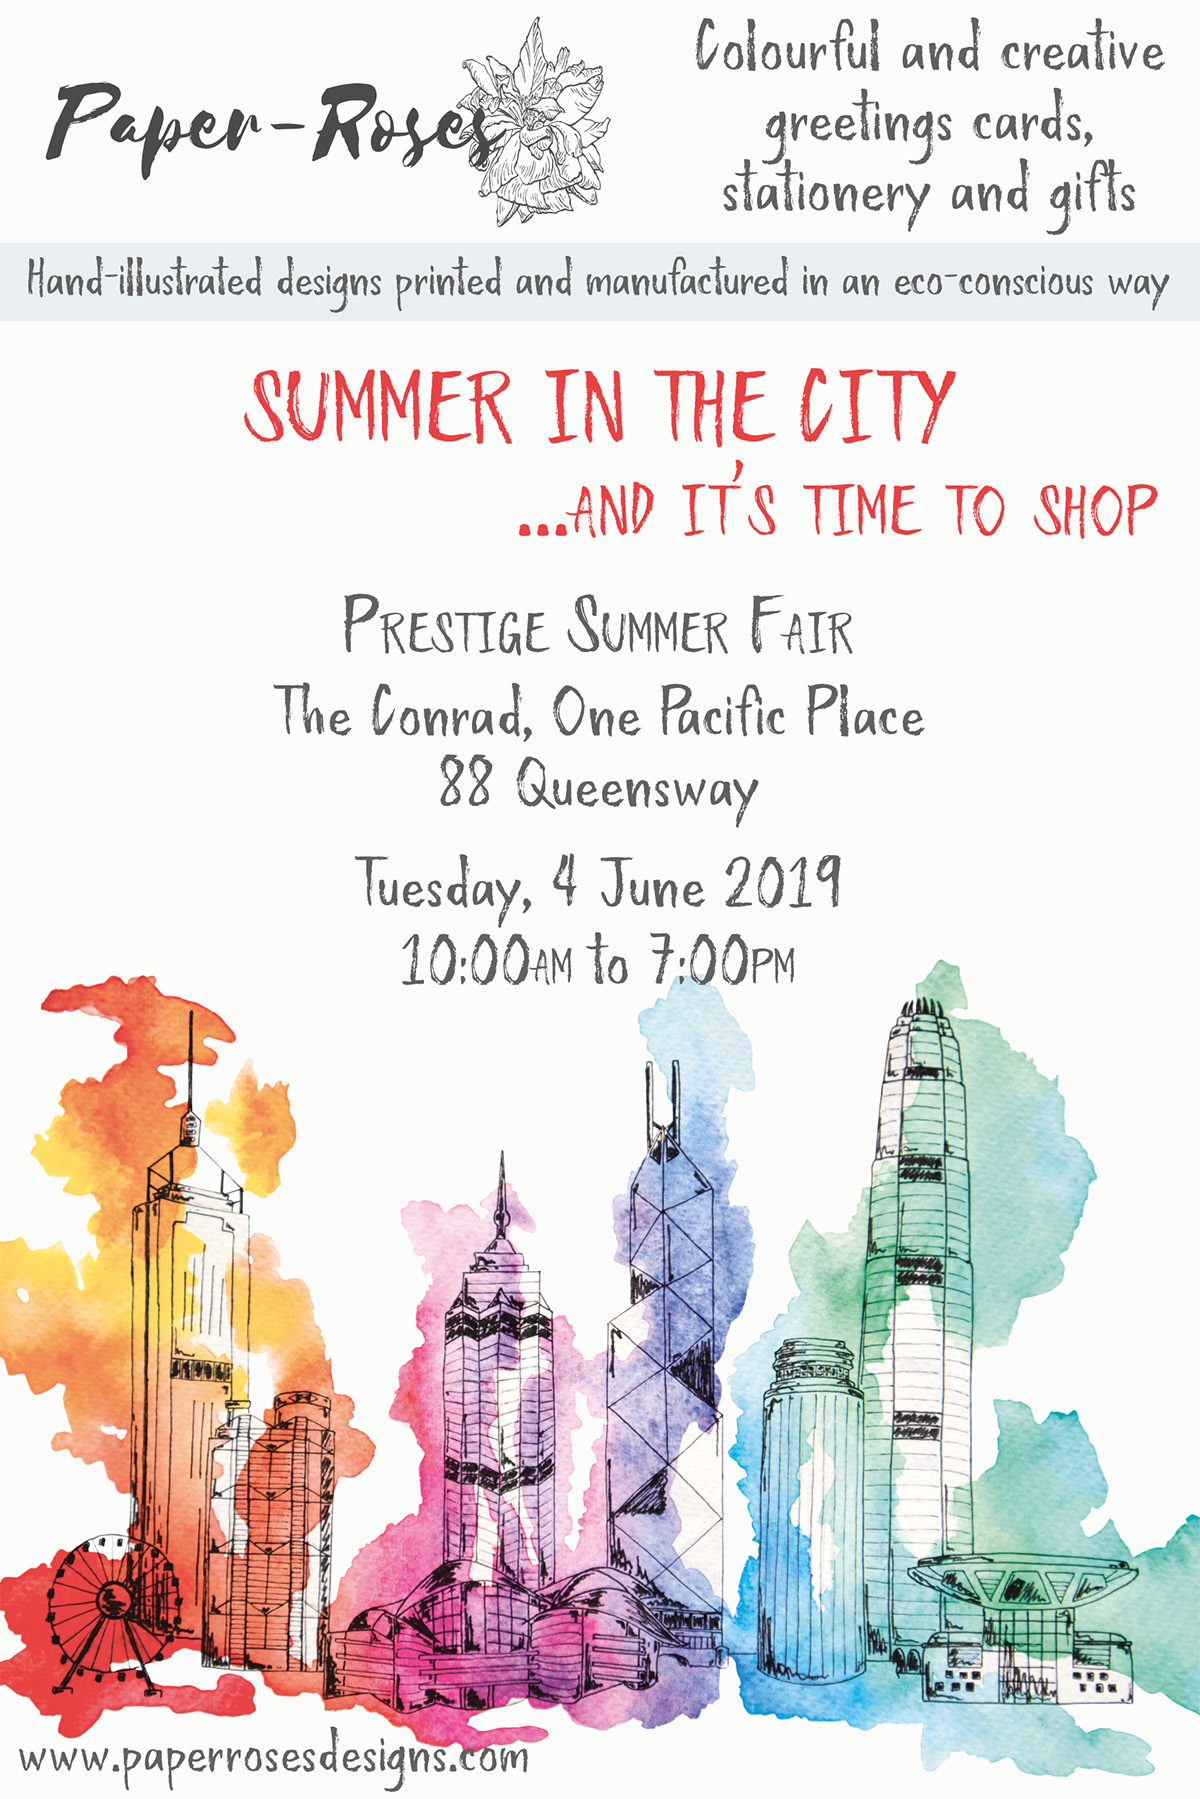 Paper-Roses | Events | Prestige Summer Fair | 4 June 2019